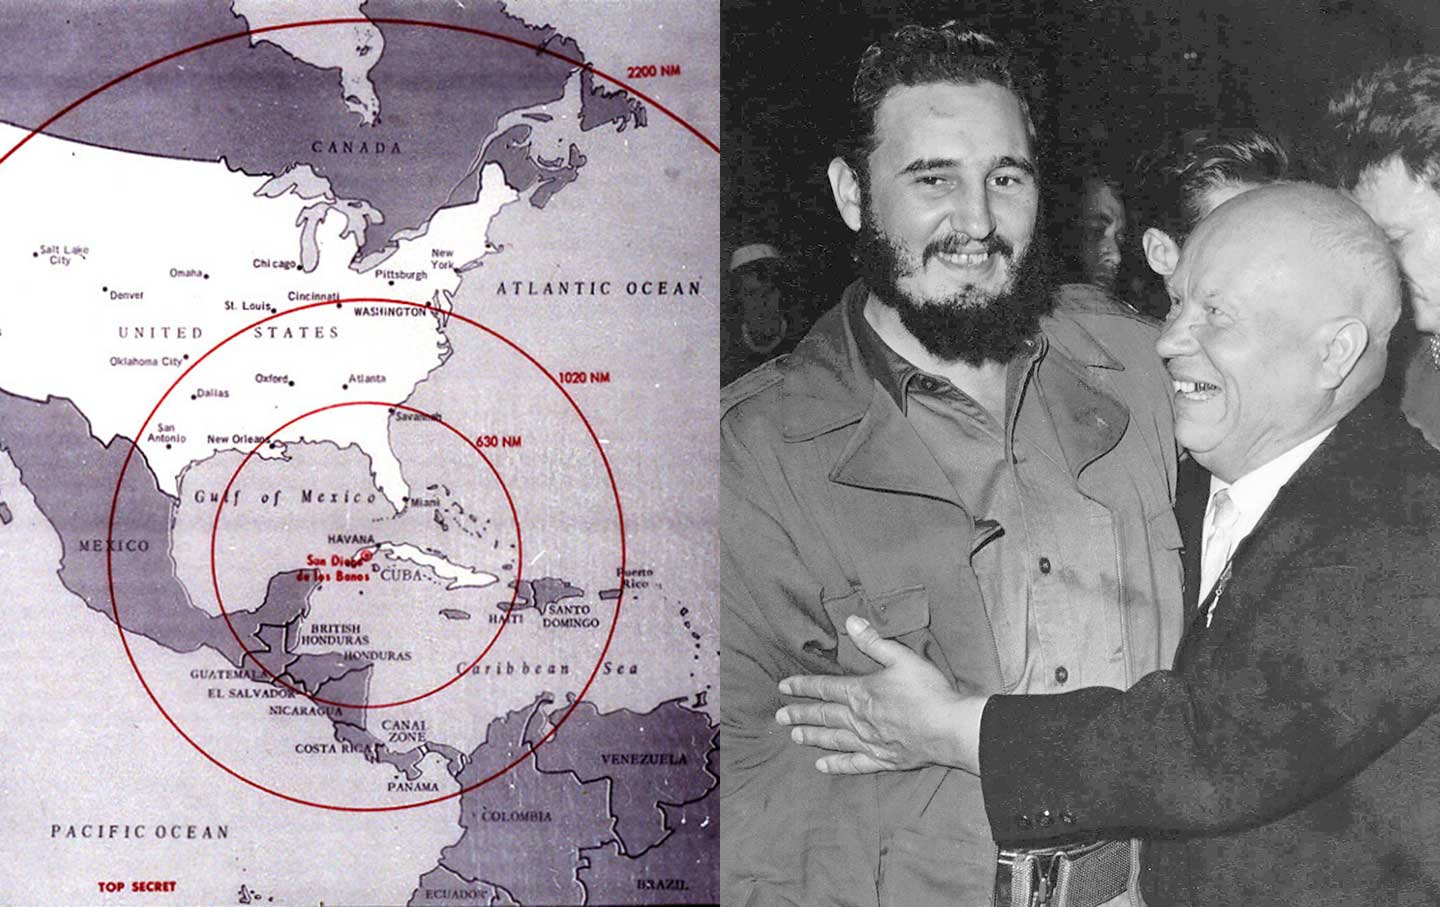 a history of the cuban missile crisis and the role of fidel castro in the sixties Cuban prime minister fidel castro, left, is embraced by soviet premier nikita khrushchev in the united nations general assembly on sept kennedy, anxious to maintain the appearance that the situation in the white house was business-as-usual, kept up his official schedule but met frequently.